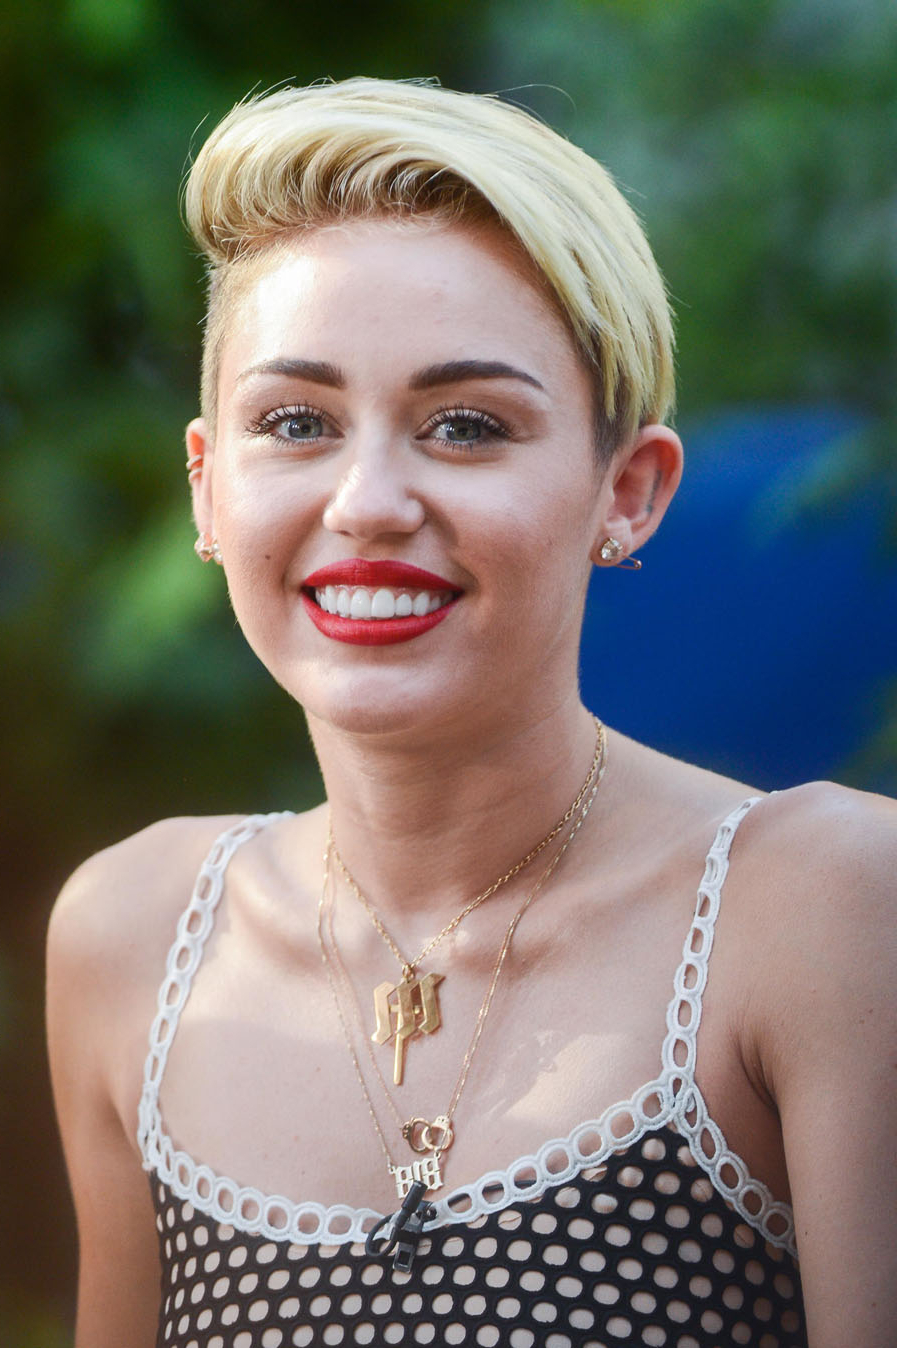 Miley Cyrus Is Already Sick Of Her Short Hair | Stylecaster In Miley Cyrus Short Hairstyles (View 6 of 25)